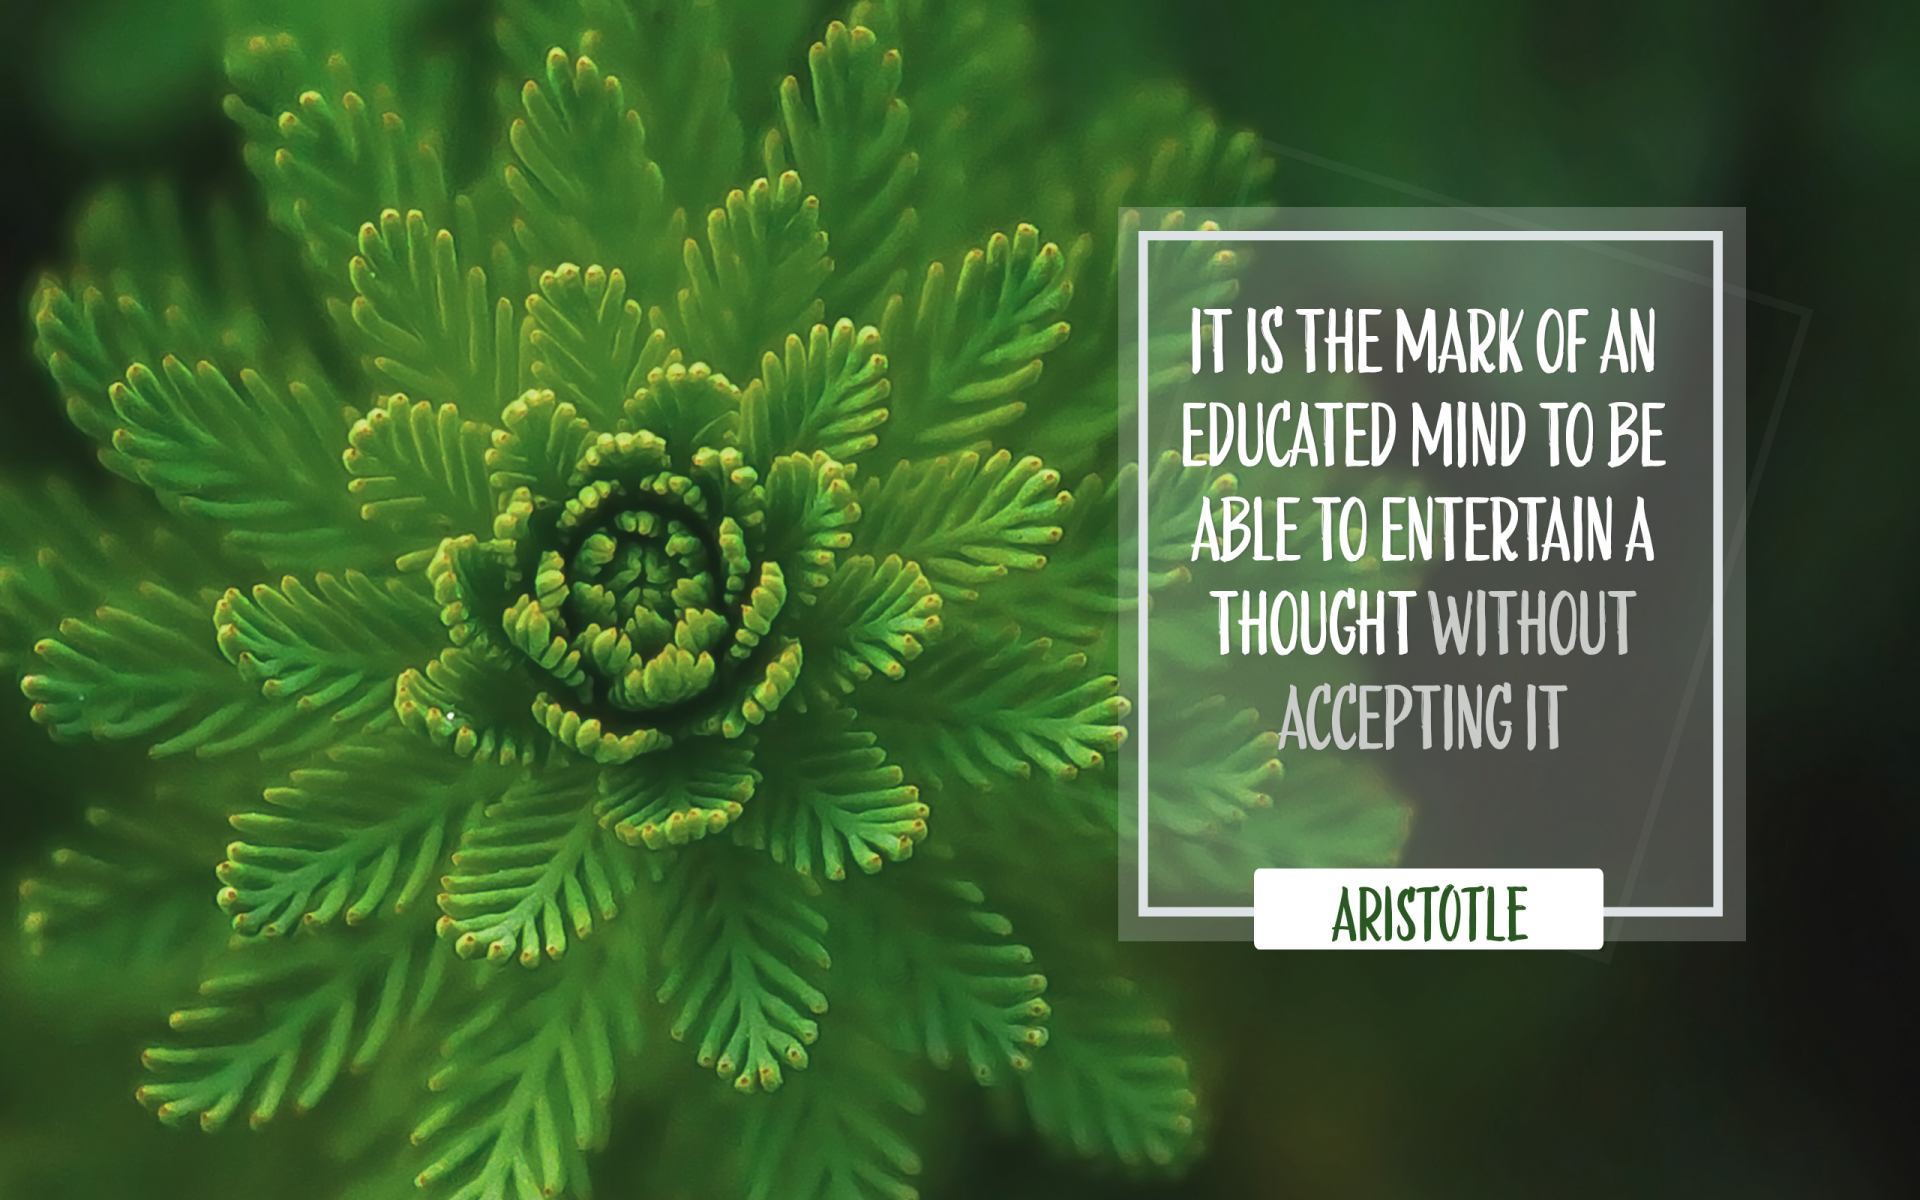 """It is the mark of an educated mind to be able to entertain a thought without accepting it"" Aristotle! [1920×1200]"